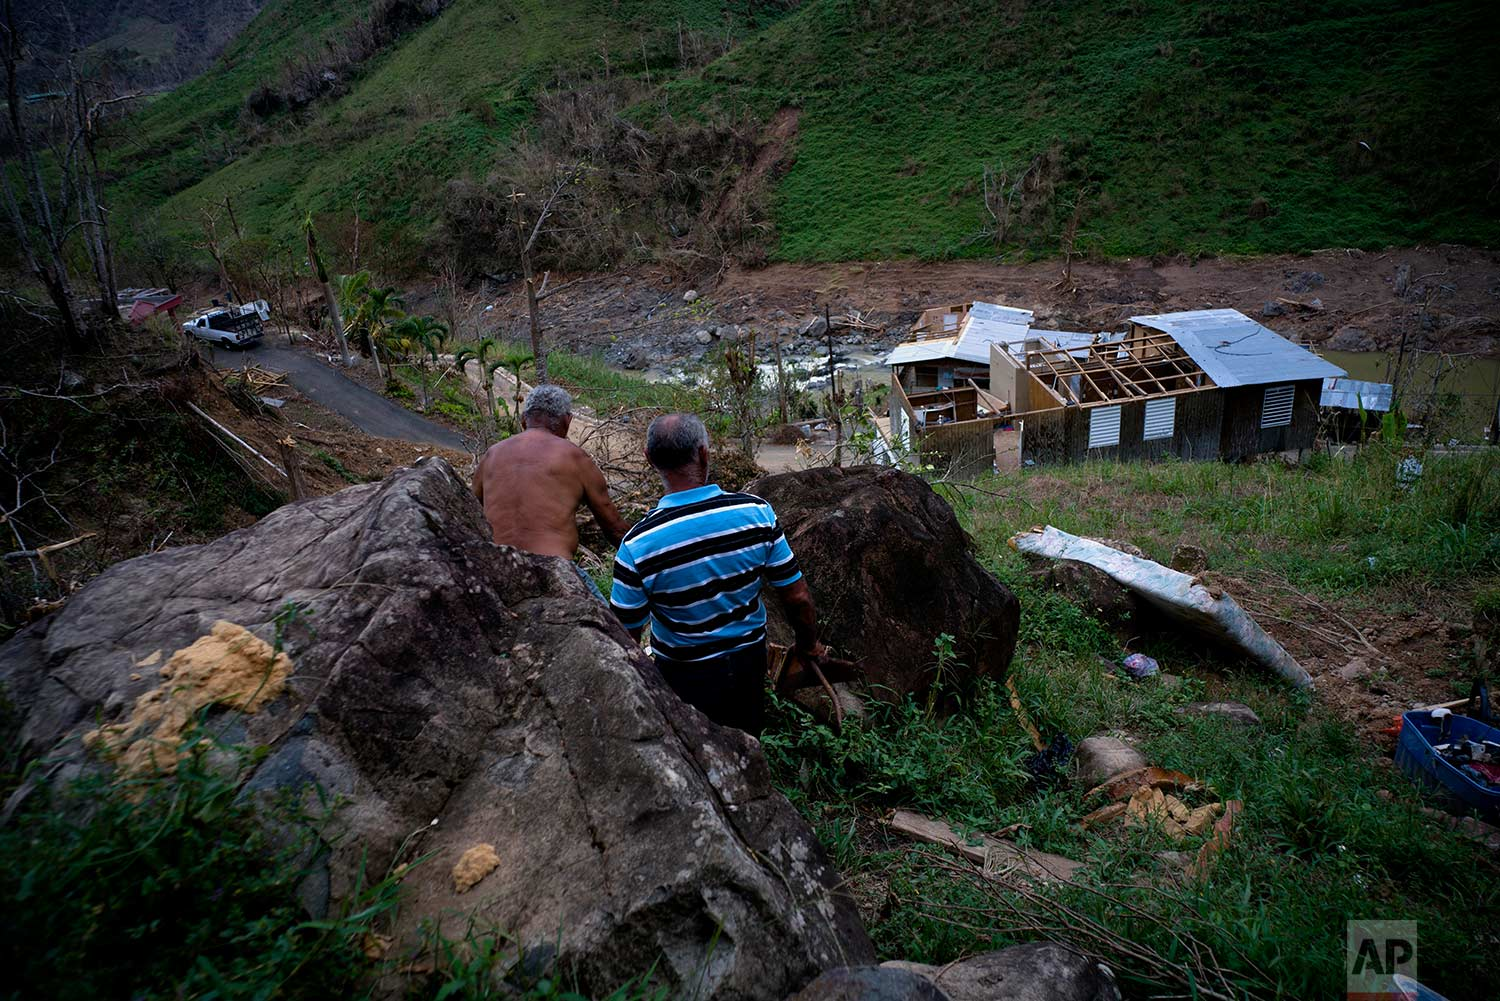 Salvador Sortre Vazquez , center, and his brother Angel Luis walk on the mountain in the direction of what is left of their house destroyed by Hurricane Maria, in Morovis, Puerto Rico, Sunday, Oct. 1, 2017. (AP Photo / Ramon Espinosa)